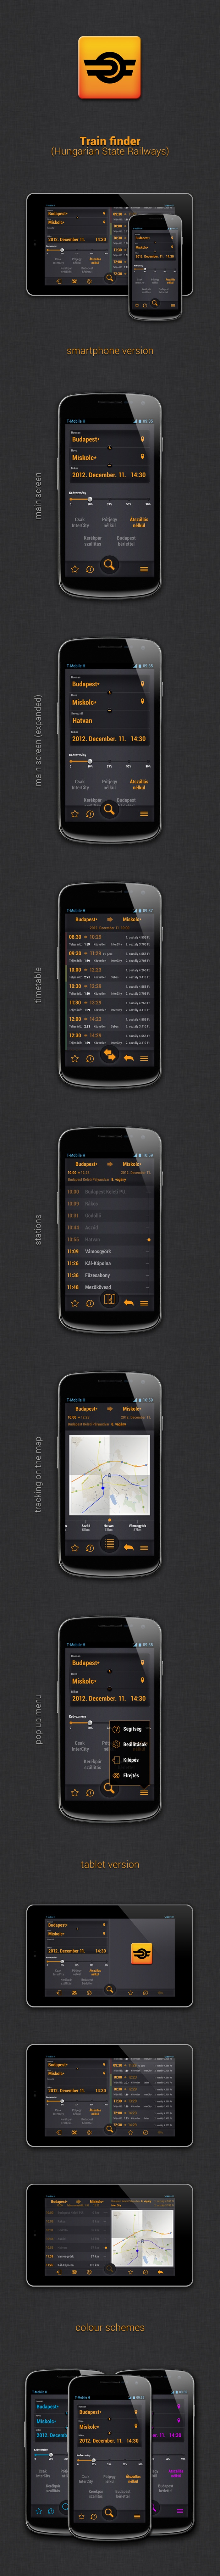 Train Finder by gabor styt, via Behance   ***  MÁV (Hungarian State Railways) Train finder. This is a new GUI for an existing Android app.